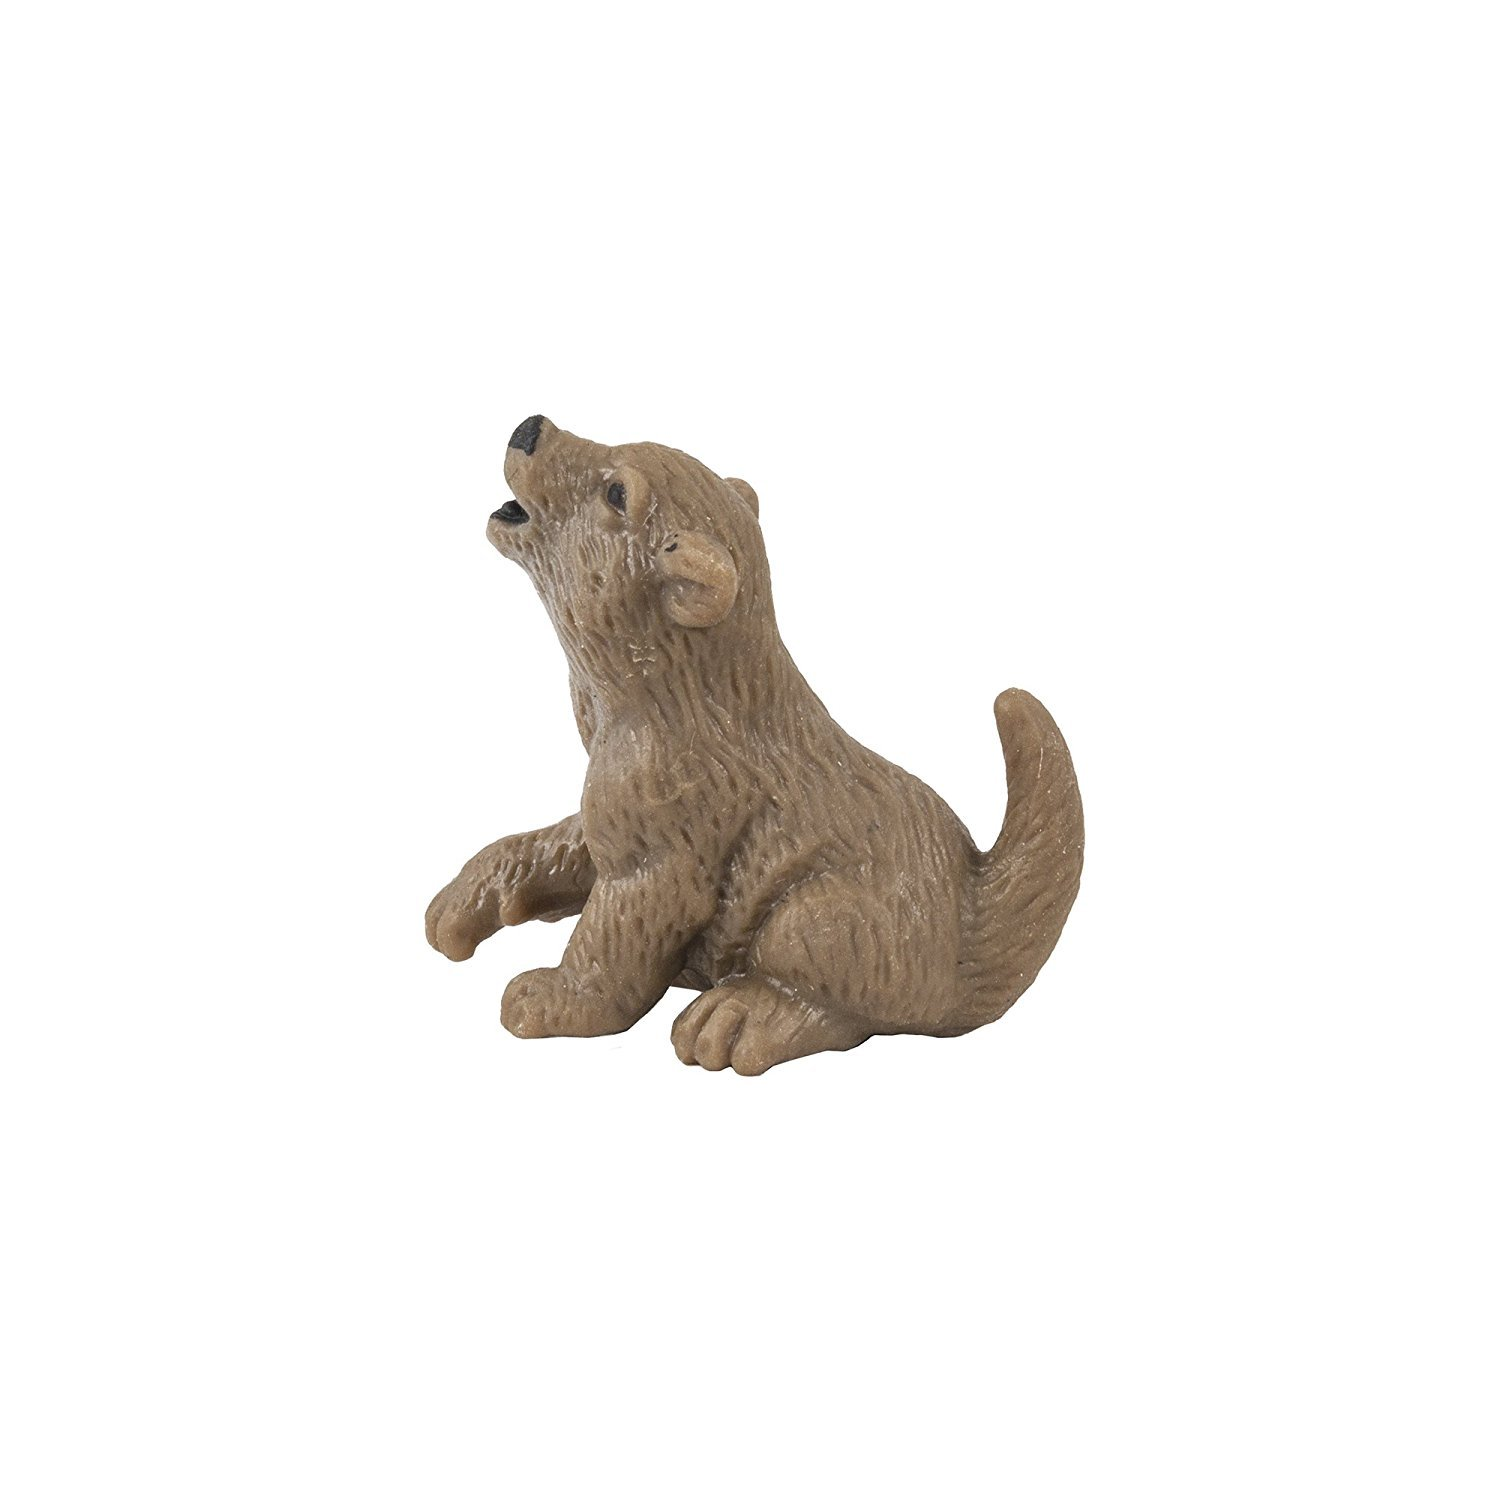 For Ages 5 and Up 341622 Good Luck Minis Wolf Cubs Quality Construction from Phthalate Safari Ltd Lead and BPA Free Materials 192 Pieces